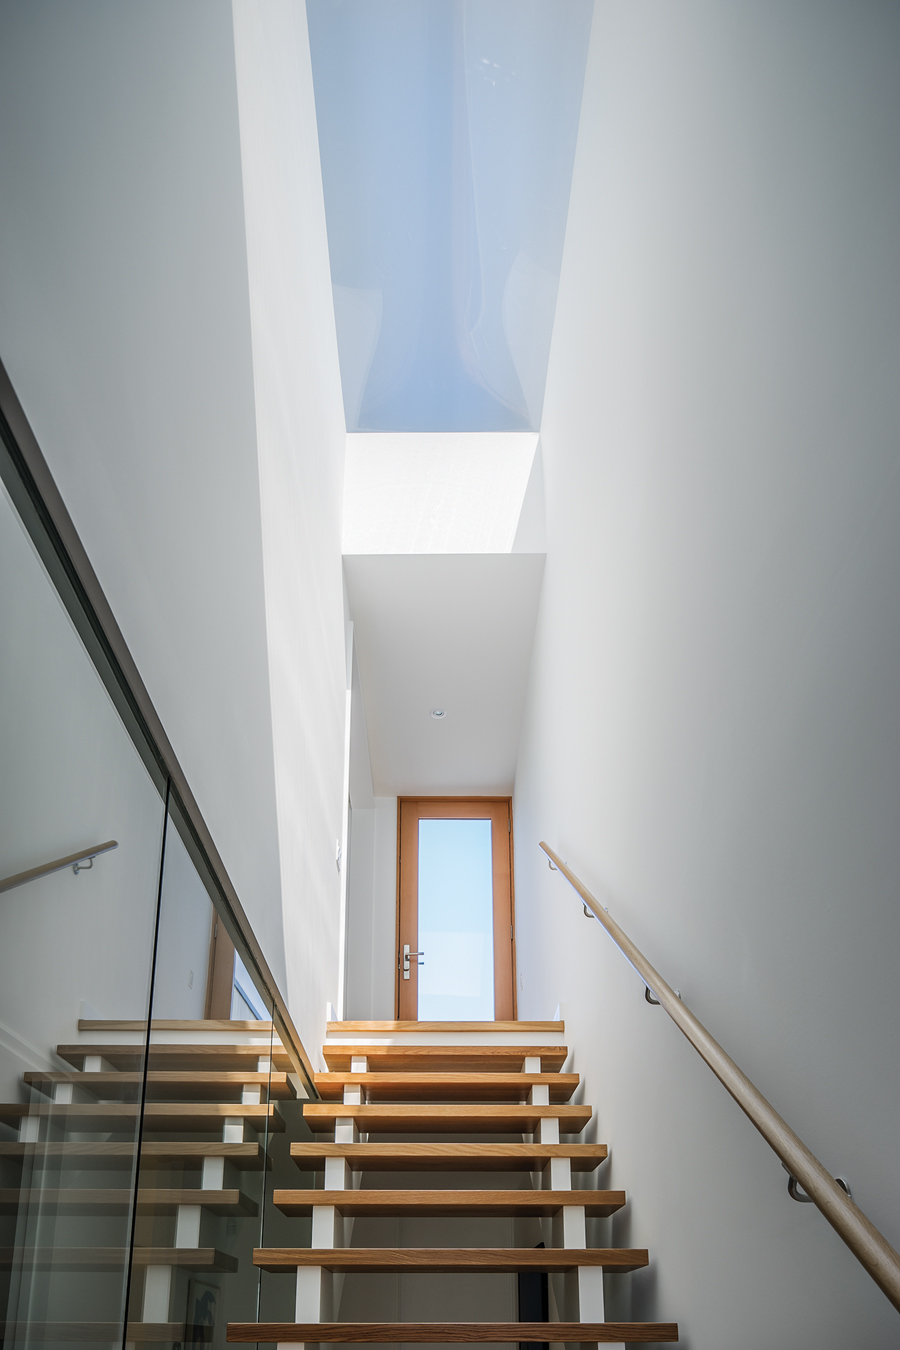 Like all of the houses in the MODERNest series, House 4 includes a skylight over the main stair.